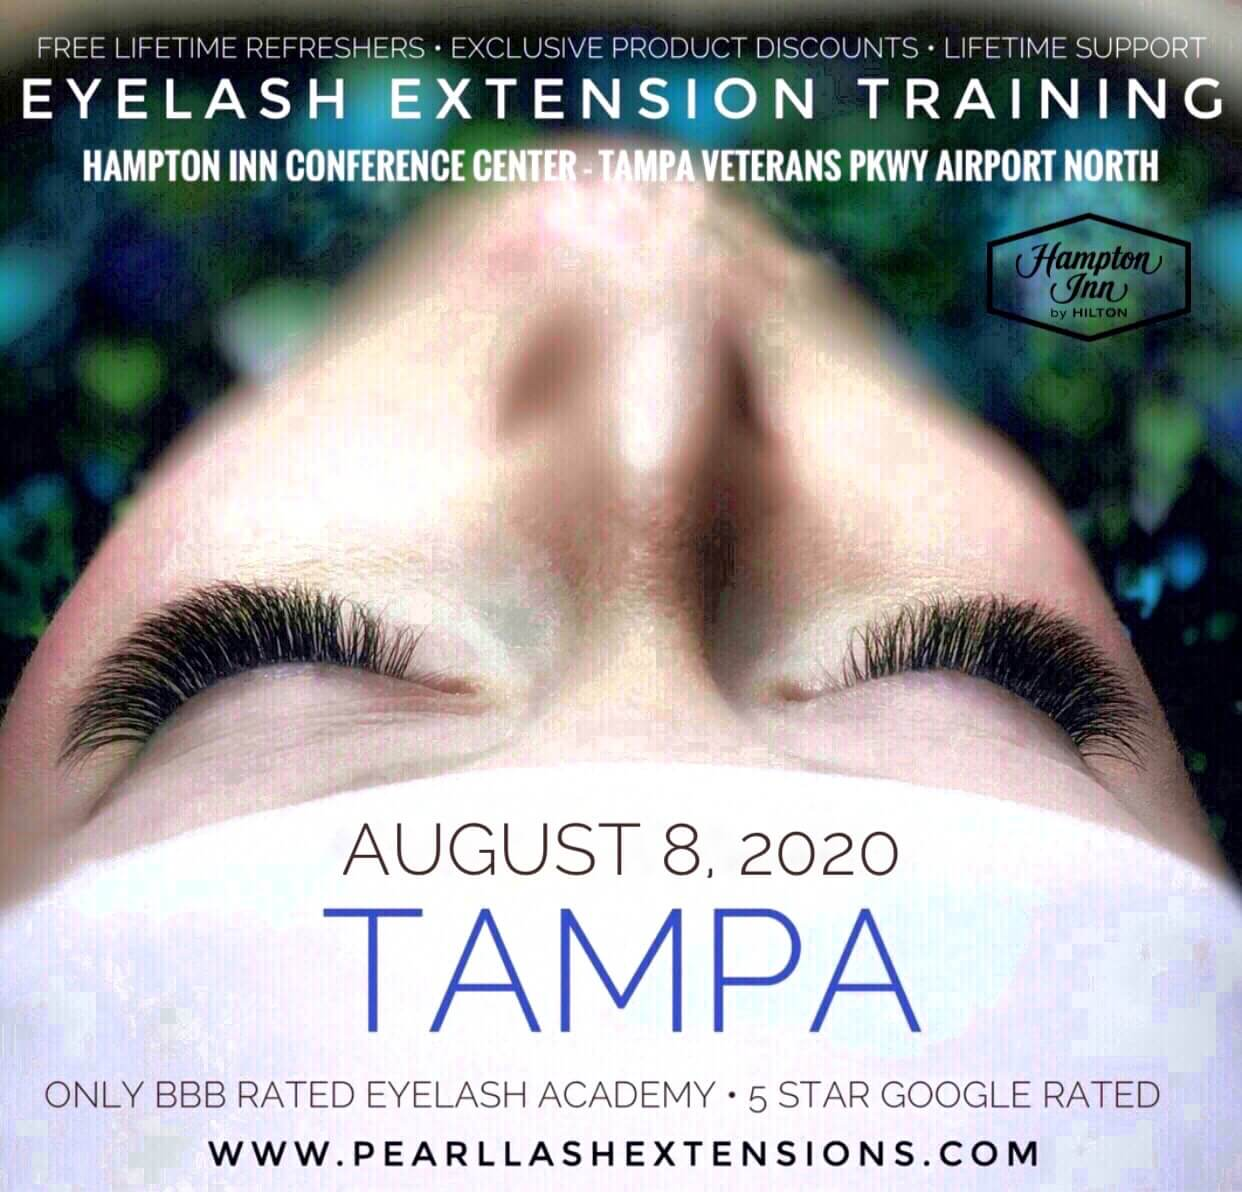 Tampa Classic Eyelash Extension Training by Pearl Lash